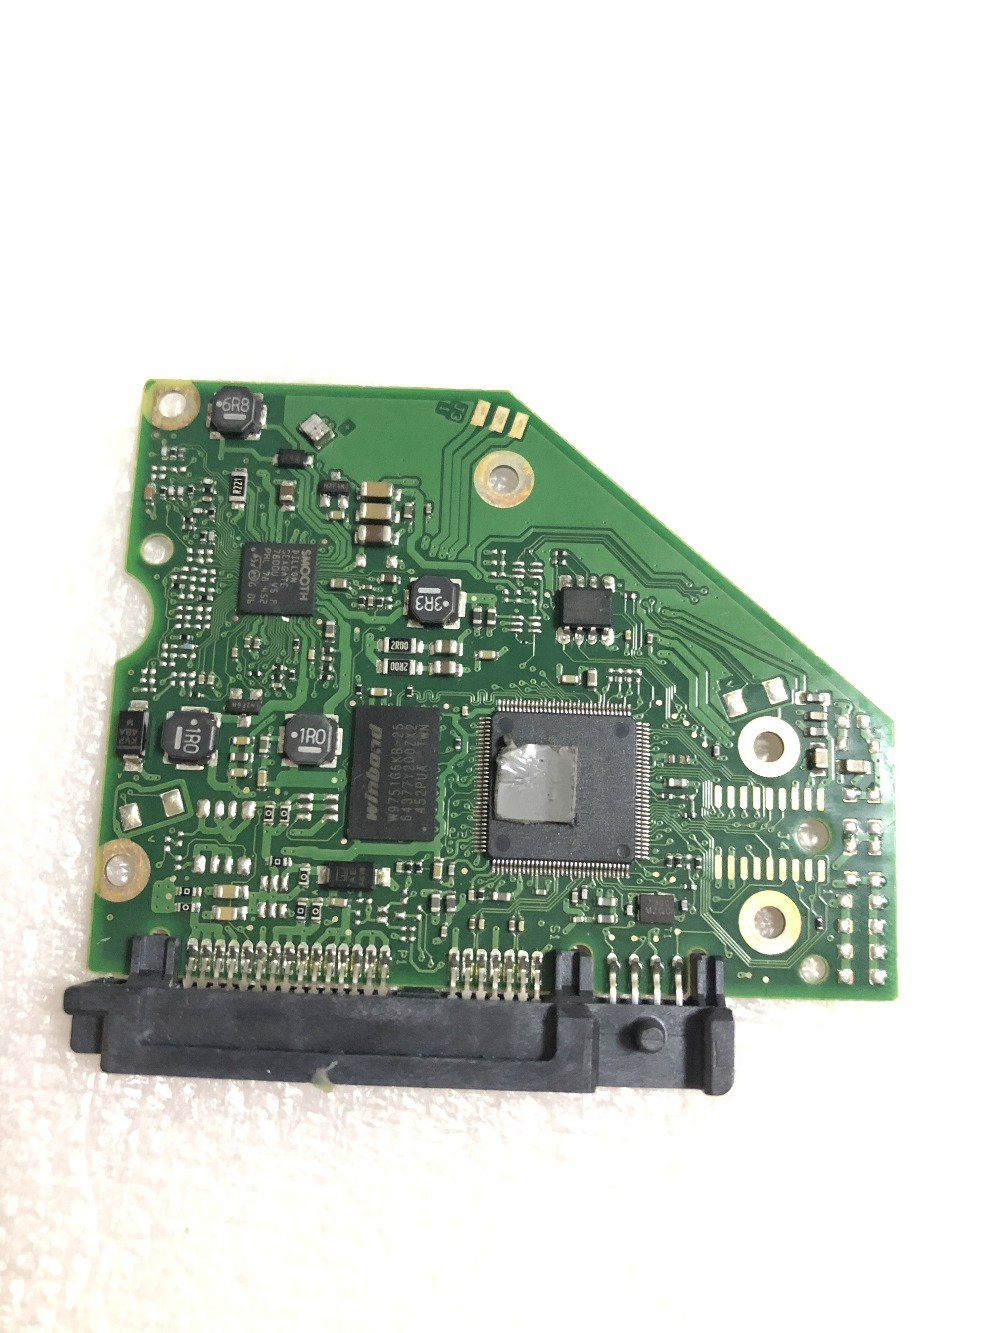 100724095 100% Original PCB Logic Board Printed 100724095 REV A For Seagate 3.5 SATA Hdd Data Recovery Repair 1T 2T 3T